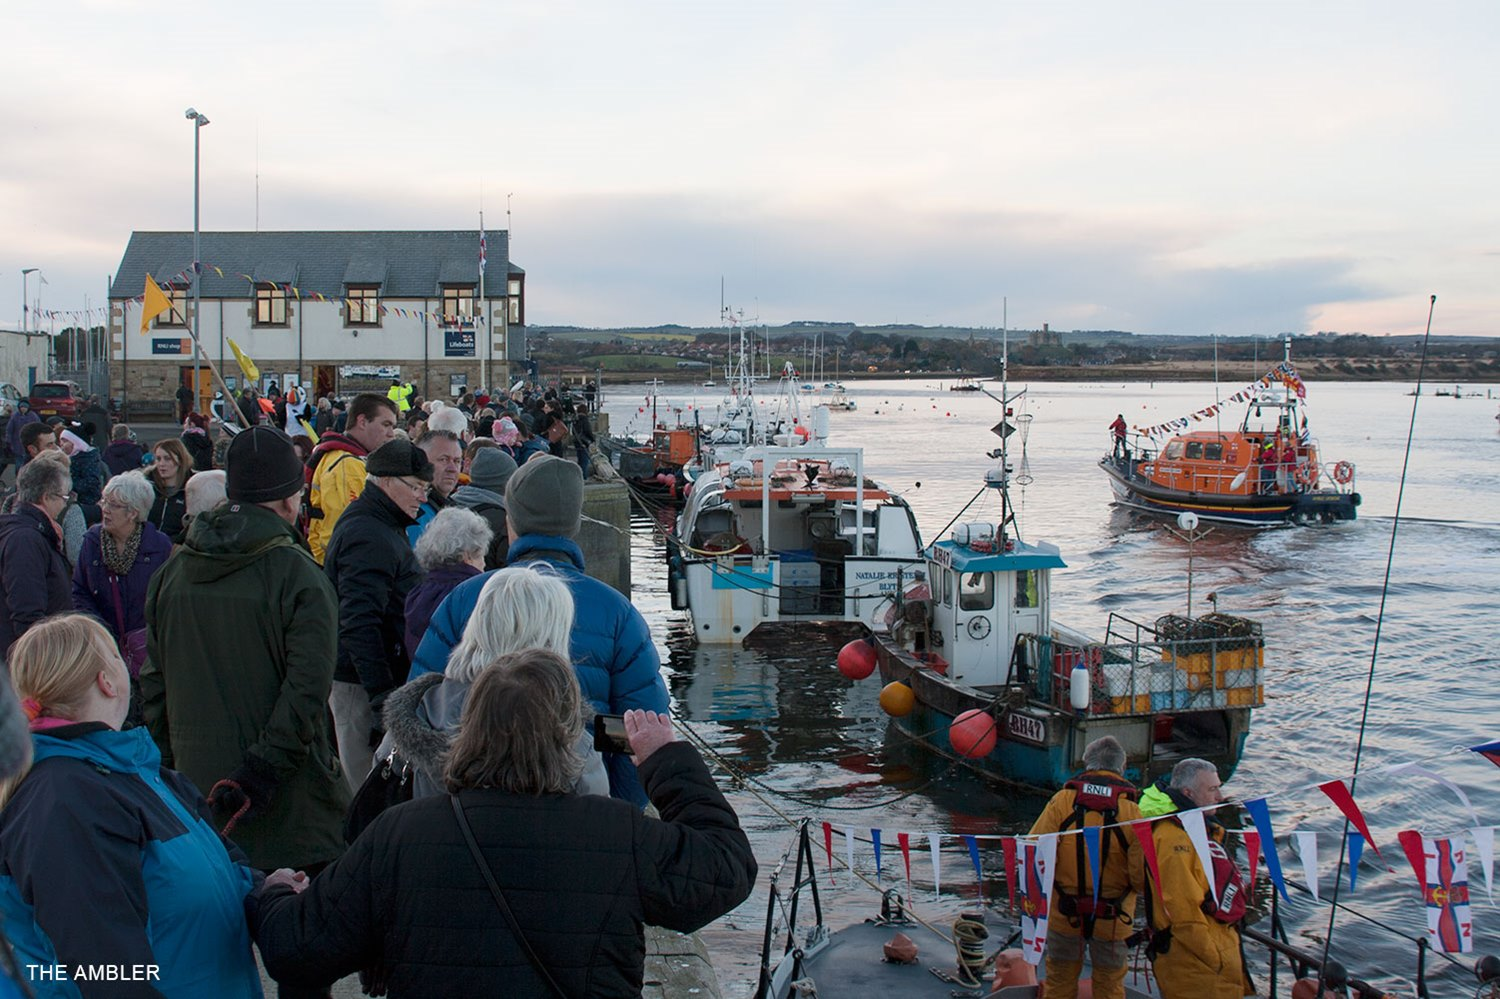 Crowds-watching-new-lifeboat-arrive